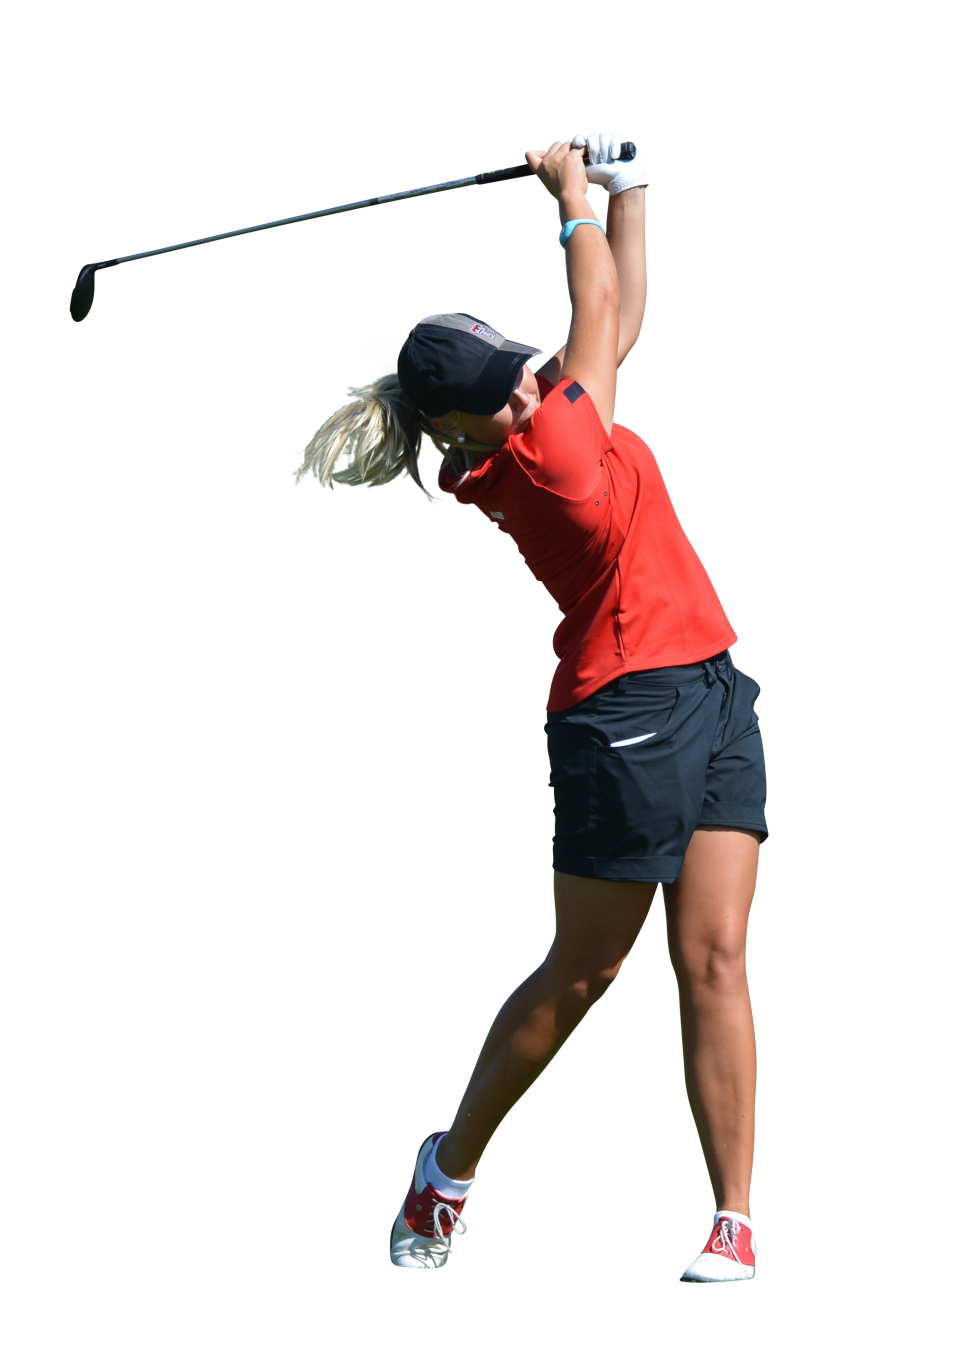 Woman play Golf PNG Image